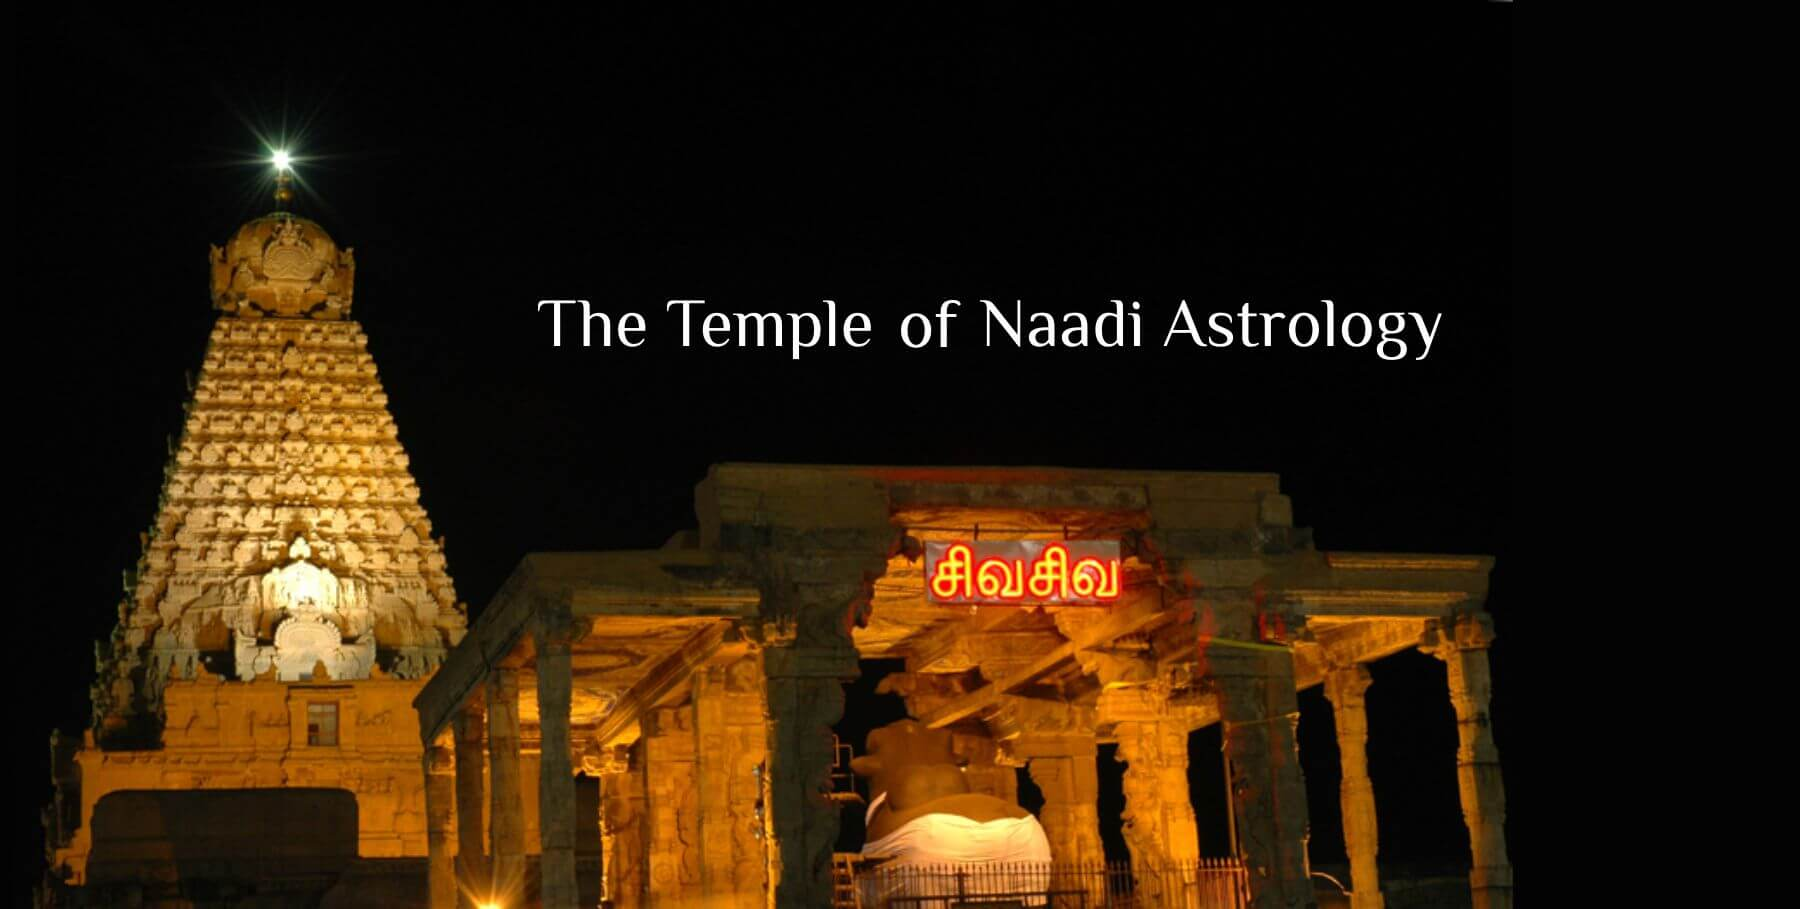 The Temple of Naadi Astrology